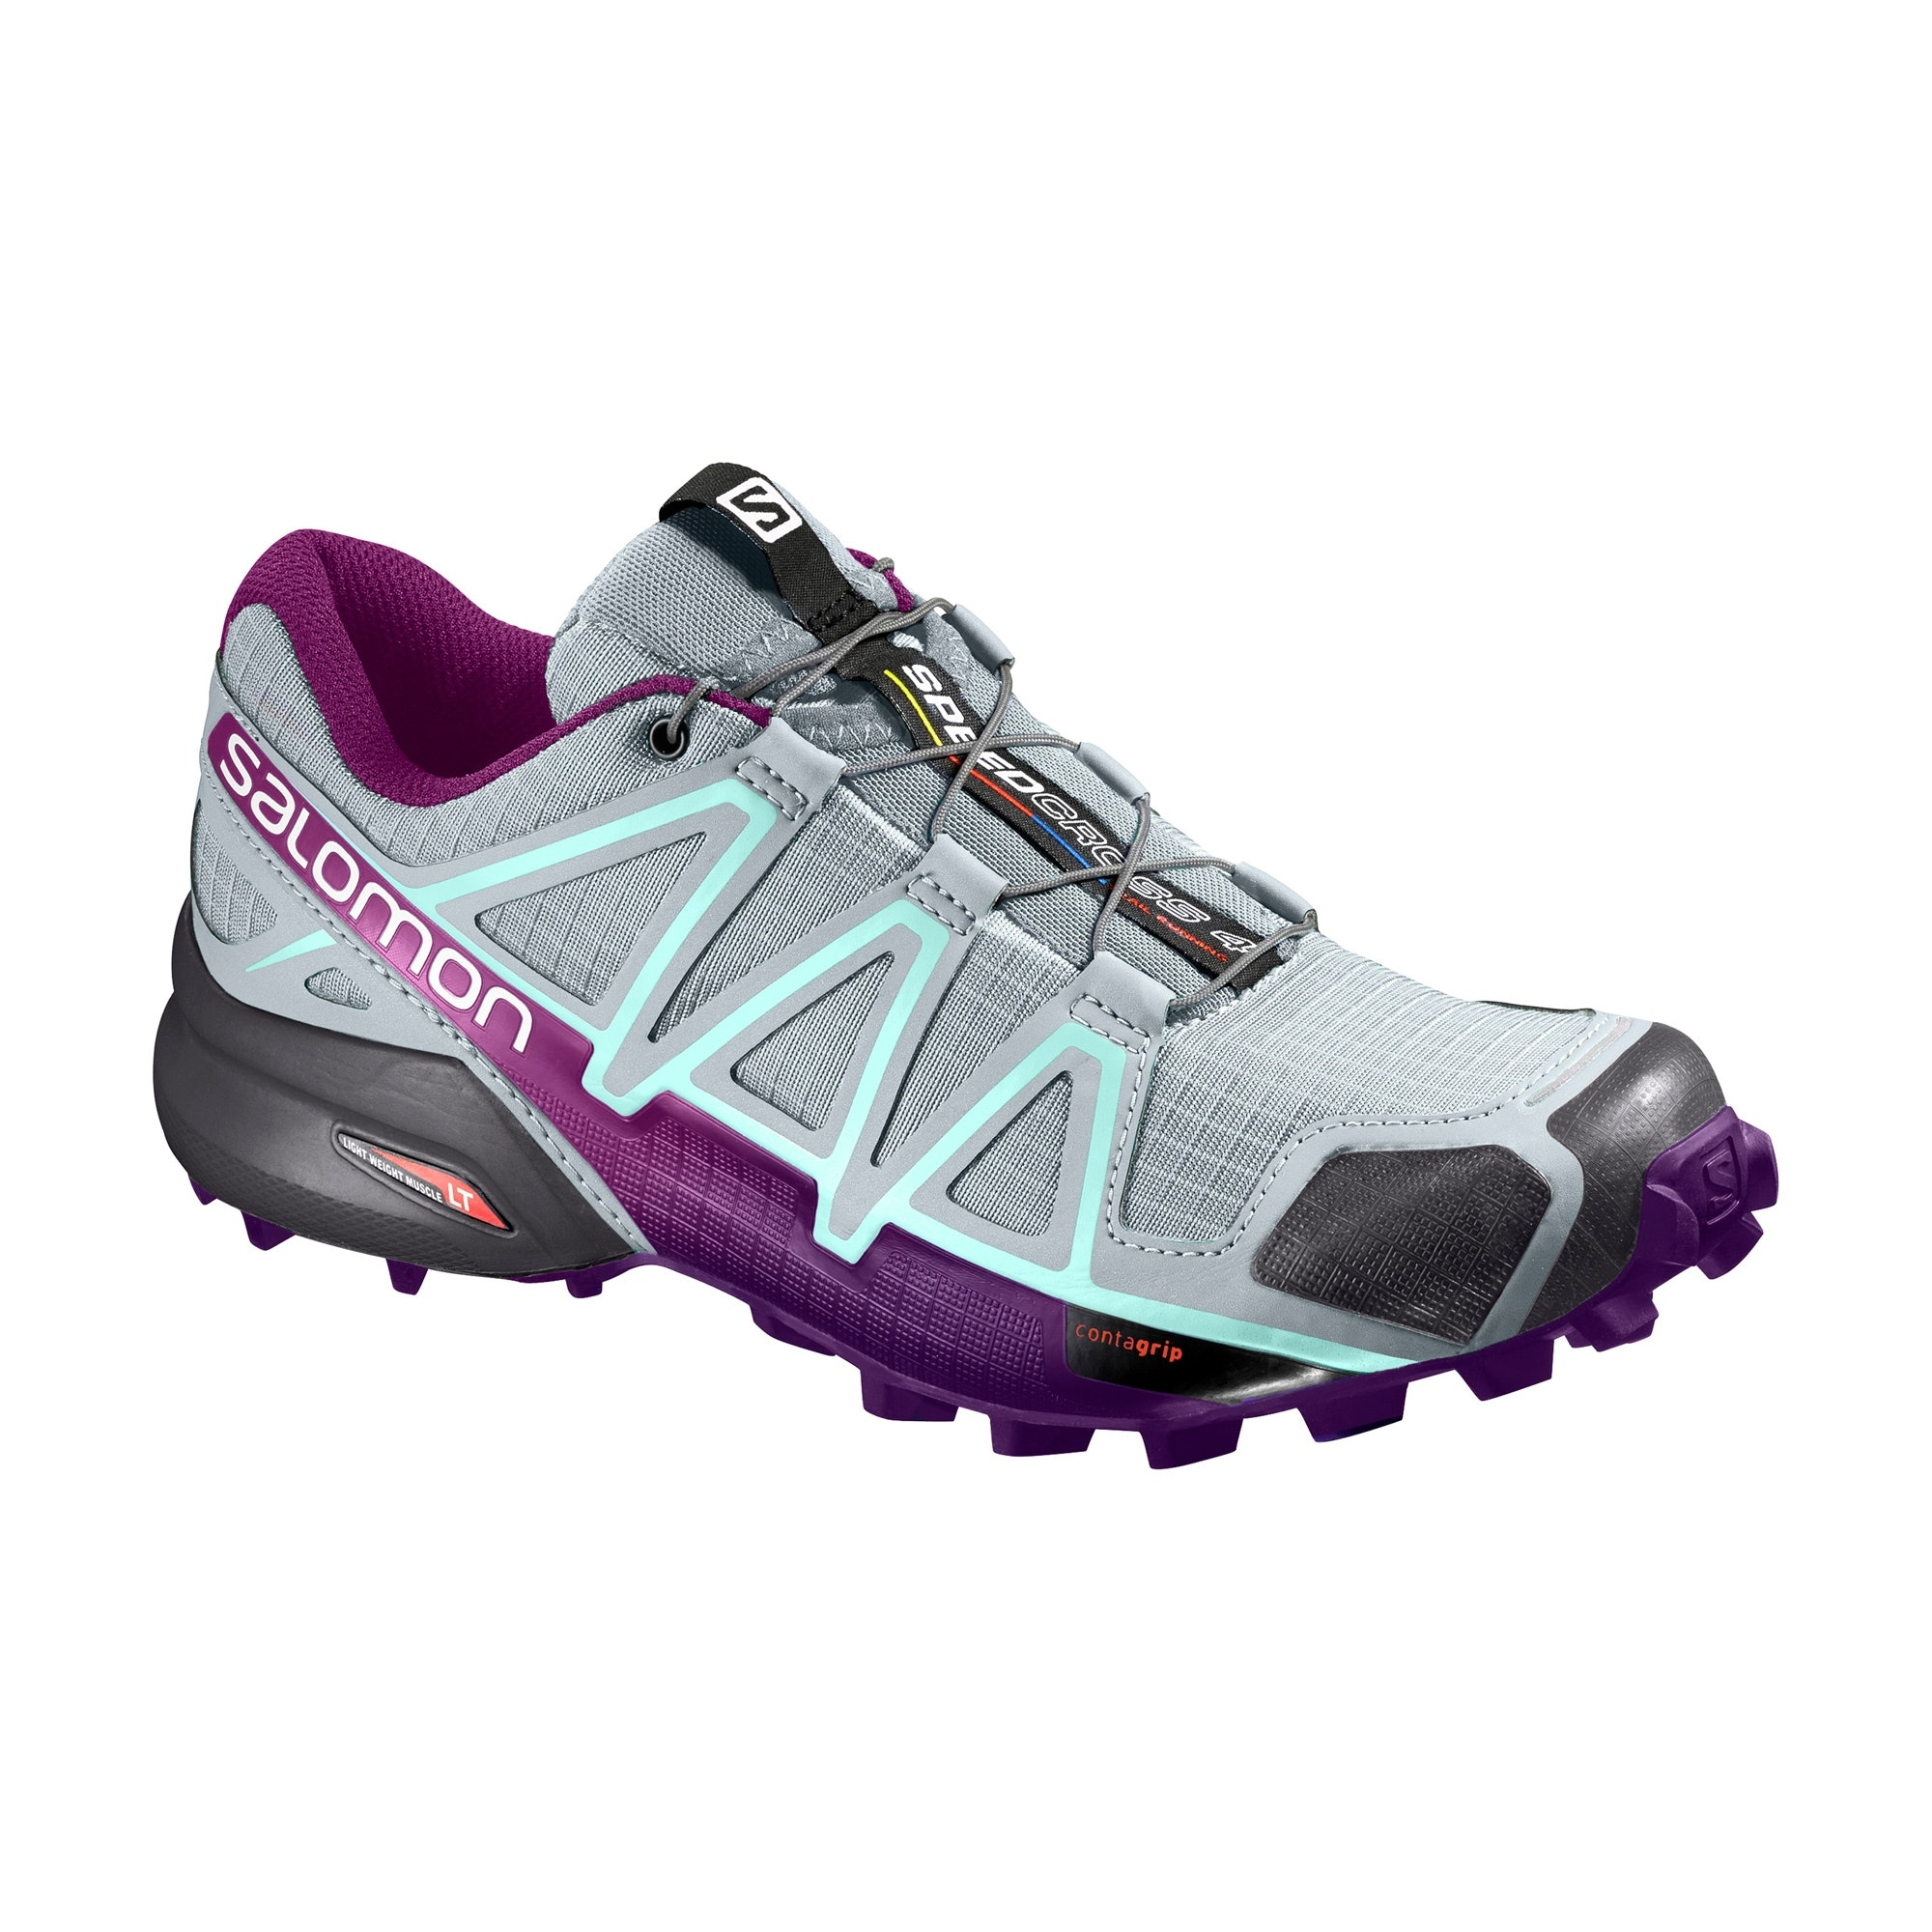 Salomon Shoes New Zealand